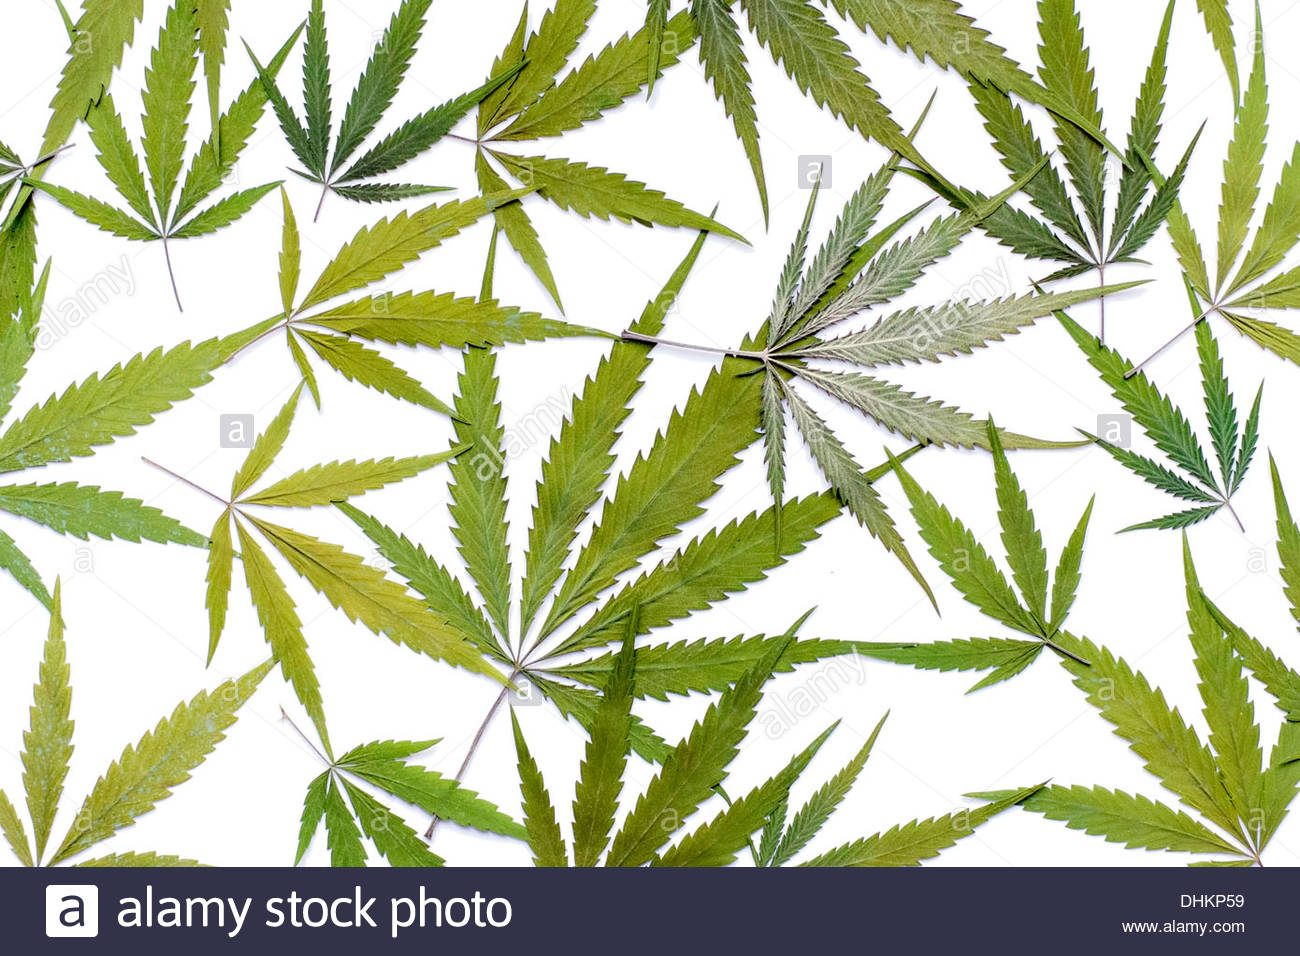 Marijuana (Cannabis sativa) leaves on white - Stock Image